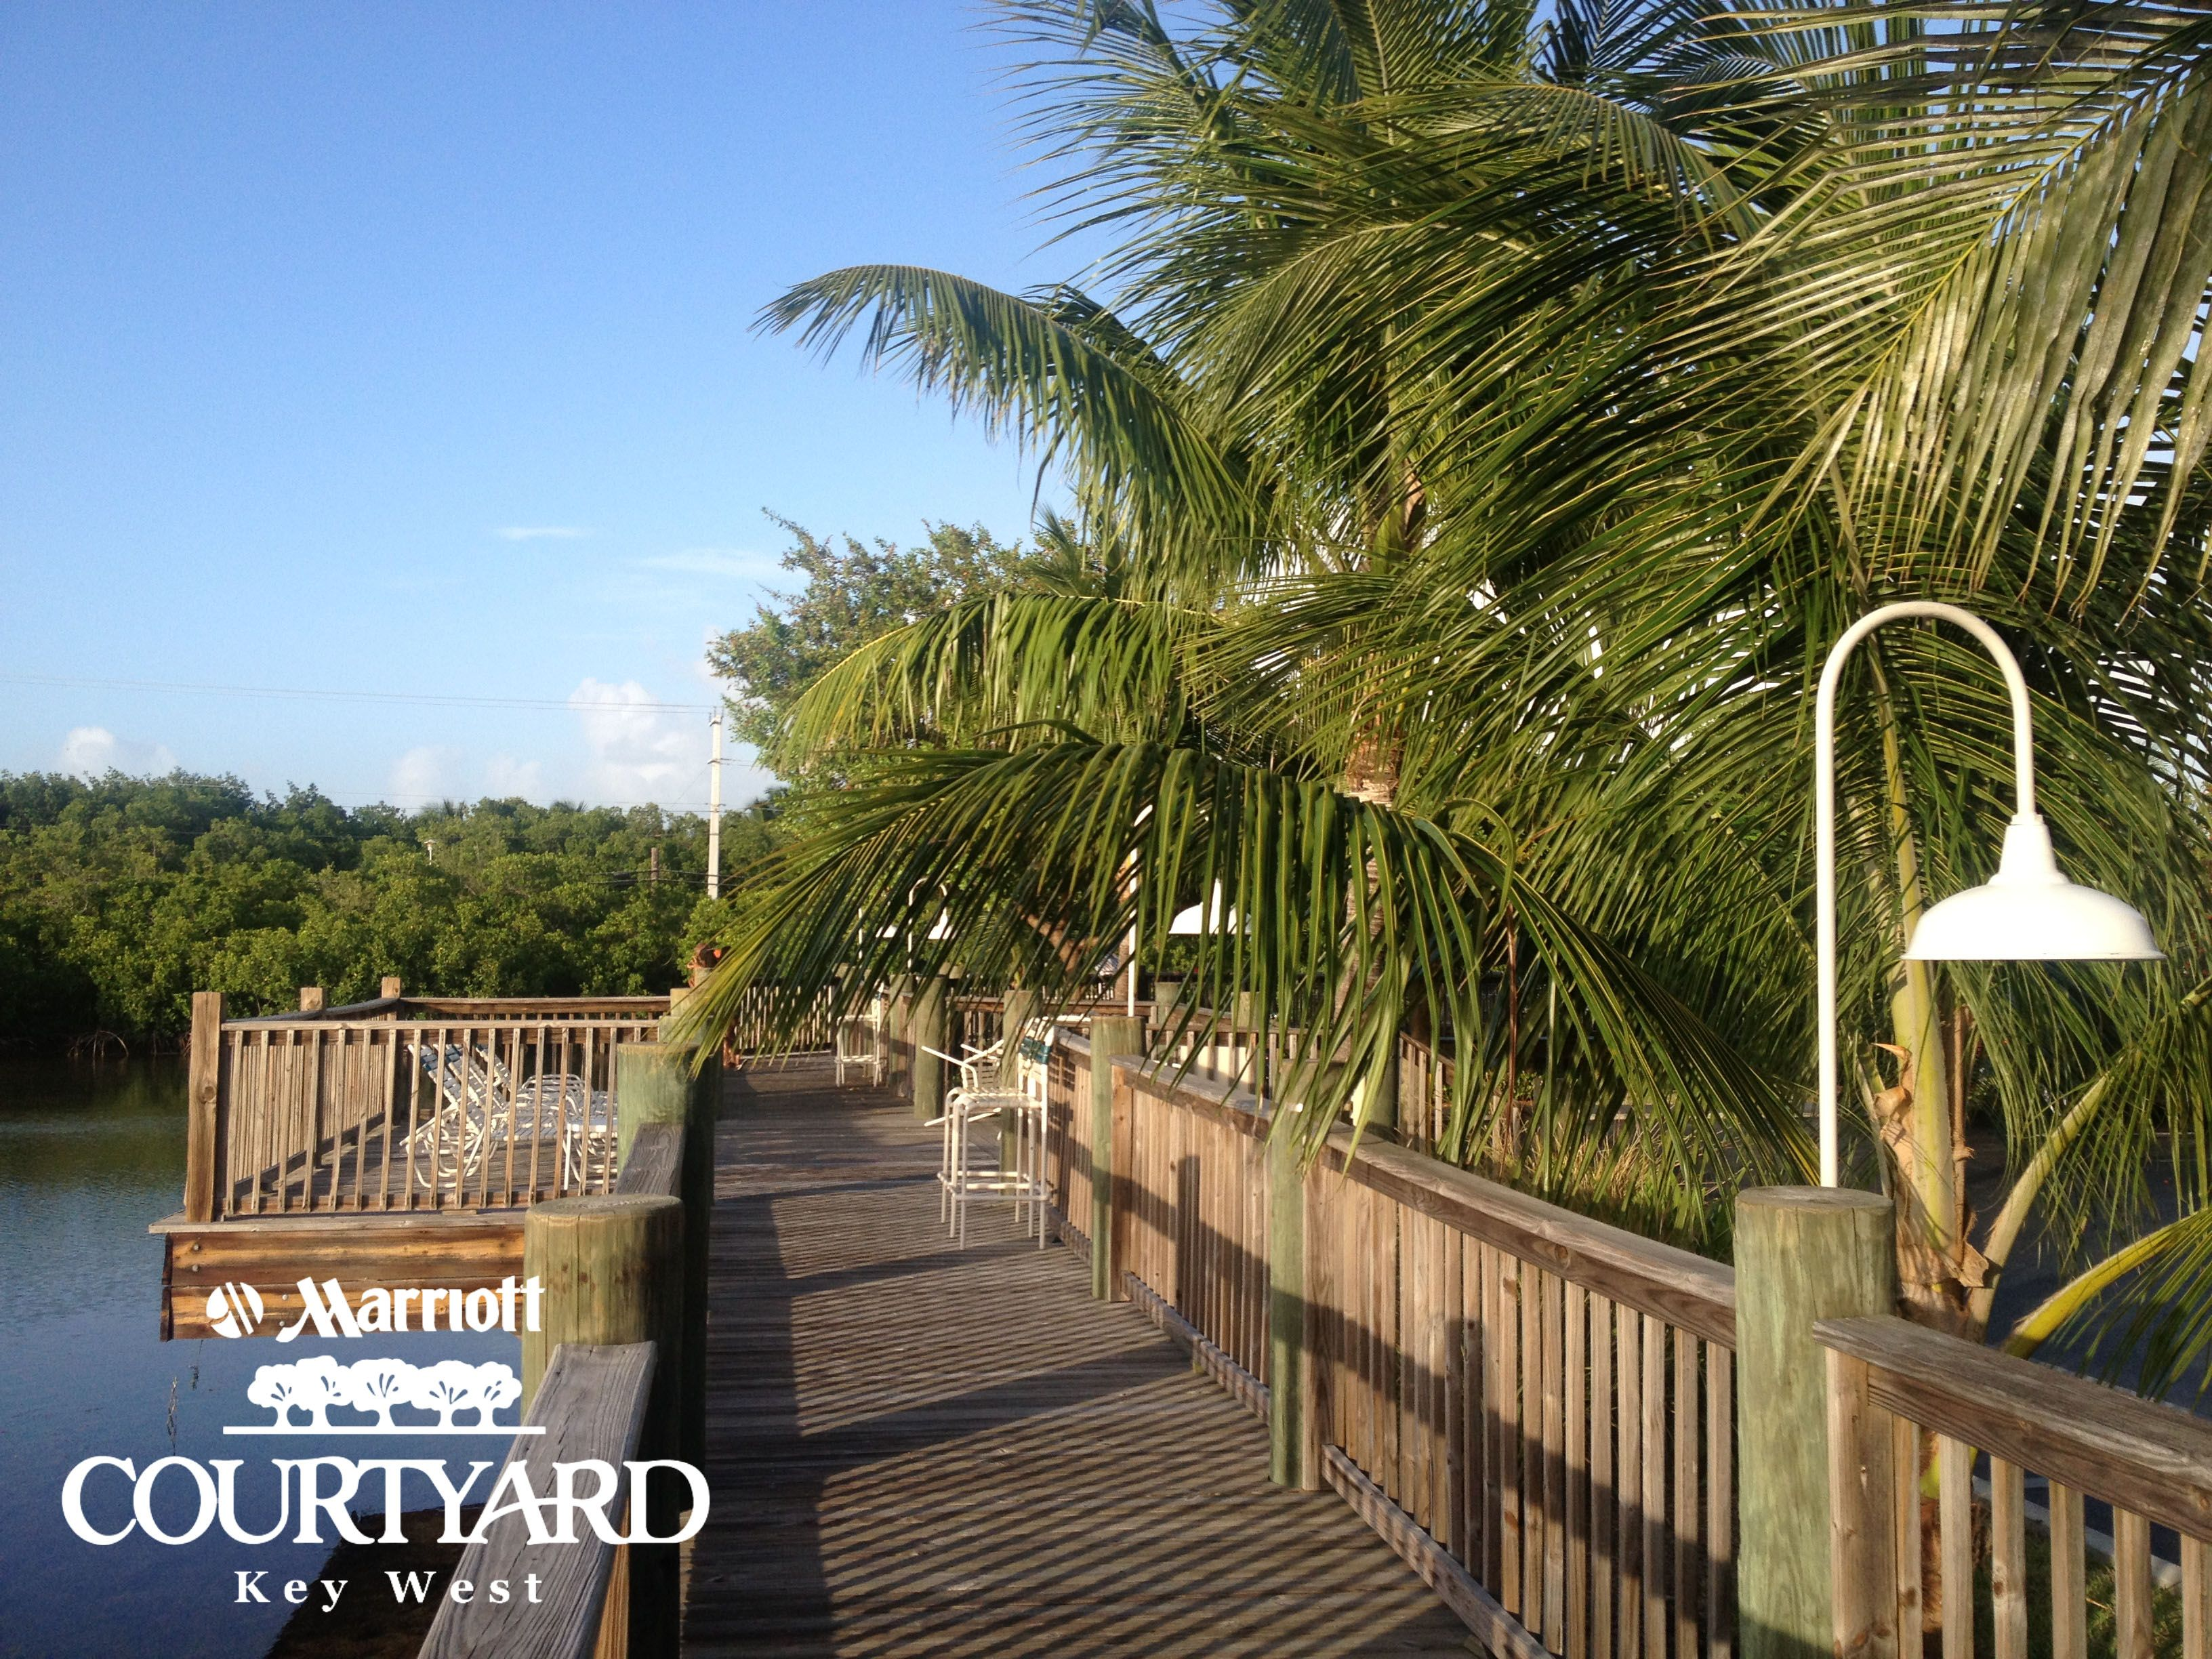 The 300ft boardwalk at the #MarriottCourtyardKeyWest is perfect for afternoon strolls or to watch the sunset! #DreamKeyWestVacation Sweepstakes